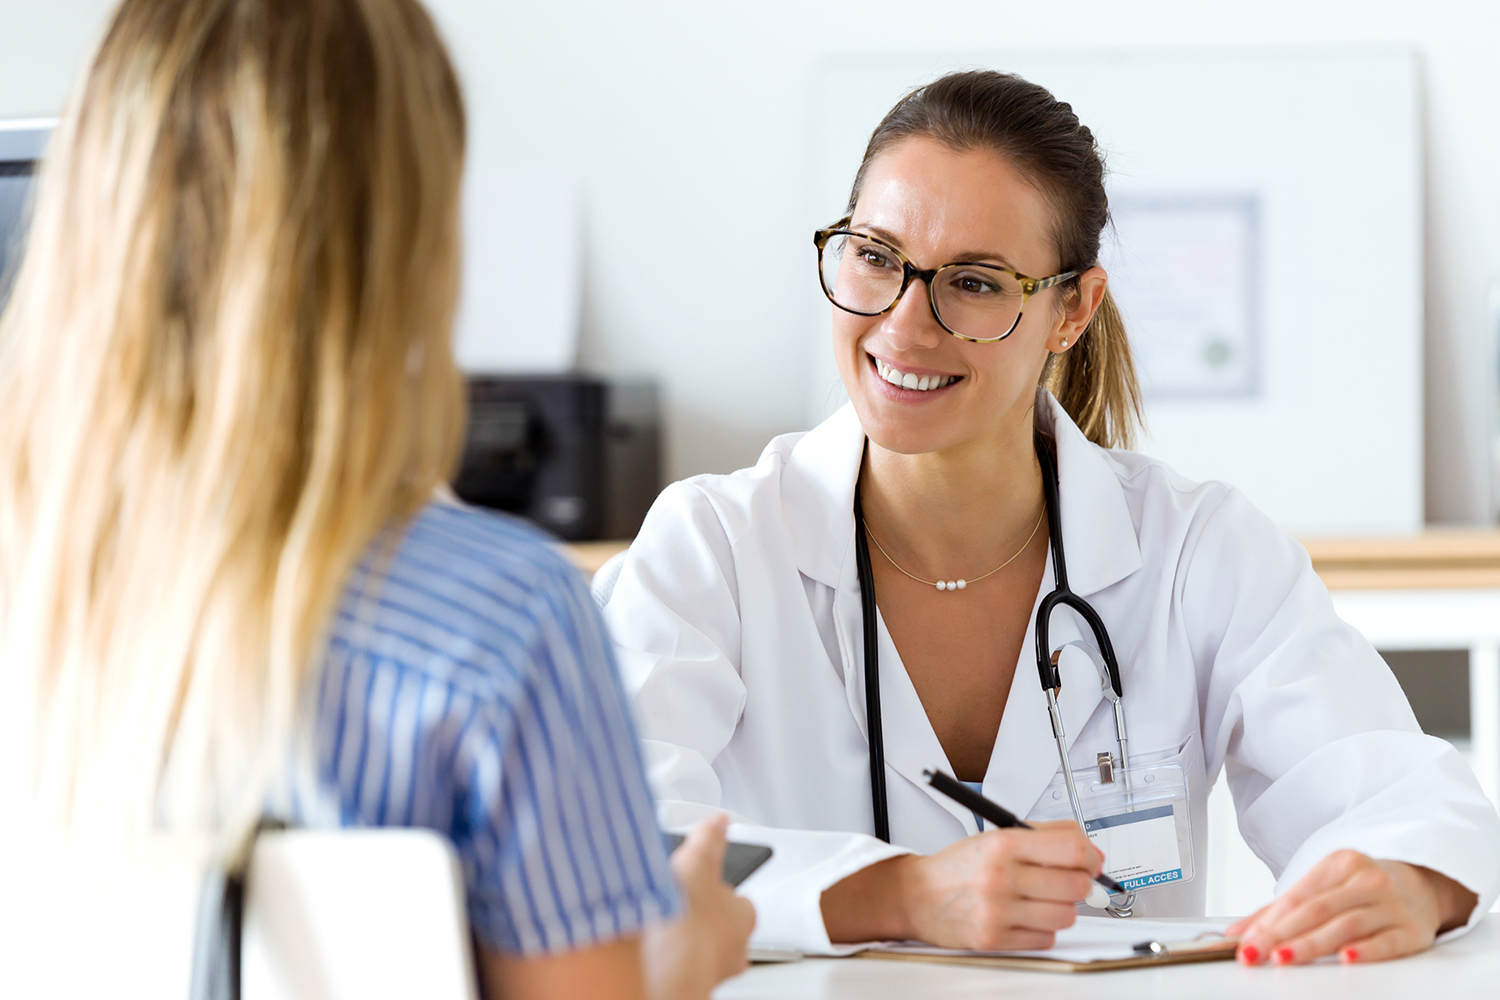 Talking to Your Doctor About STDs